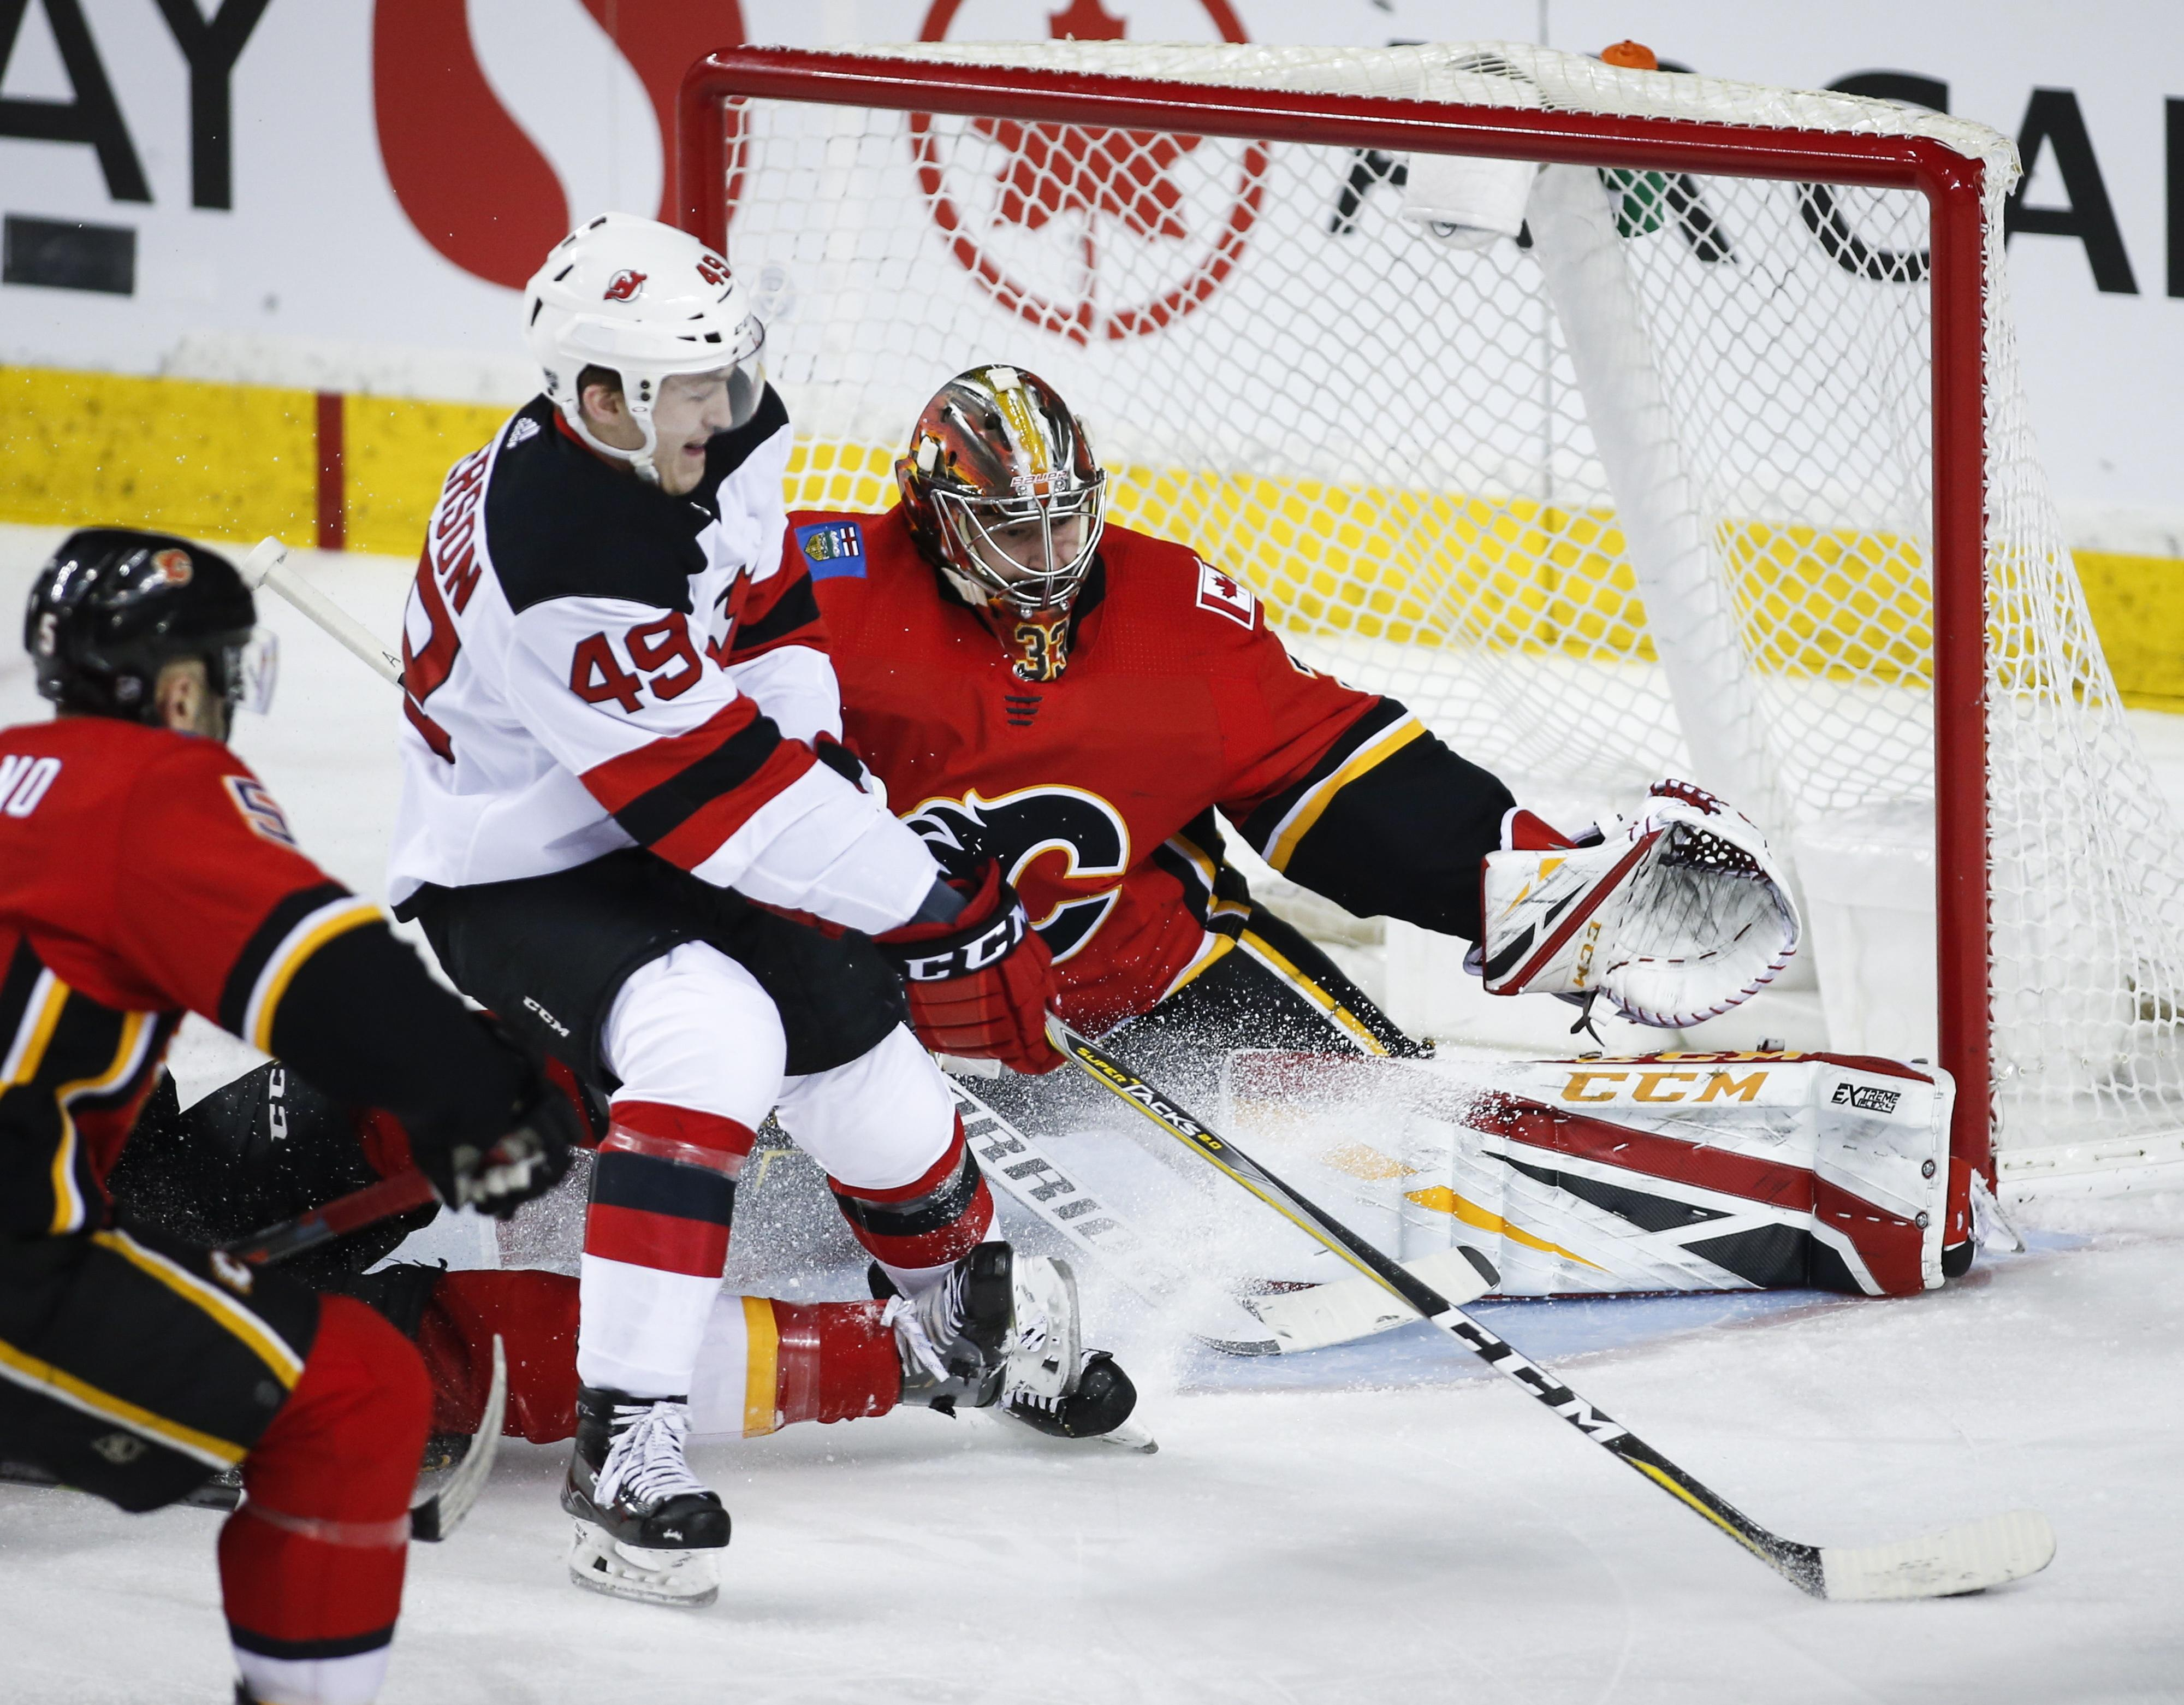 online store f793b 4265c NHL roundup: Johnny Gaudreau powers Flames past Devils 9-4 ...